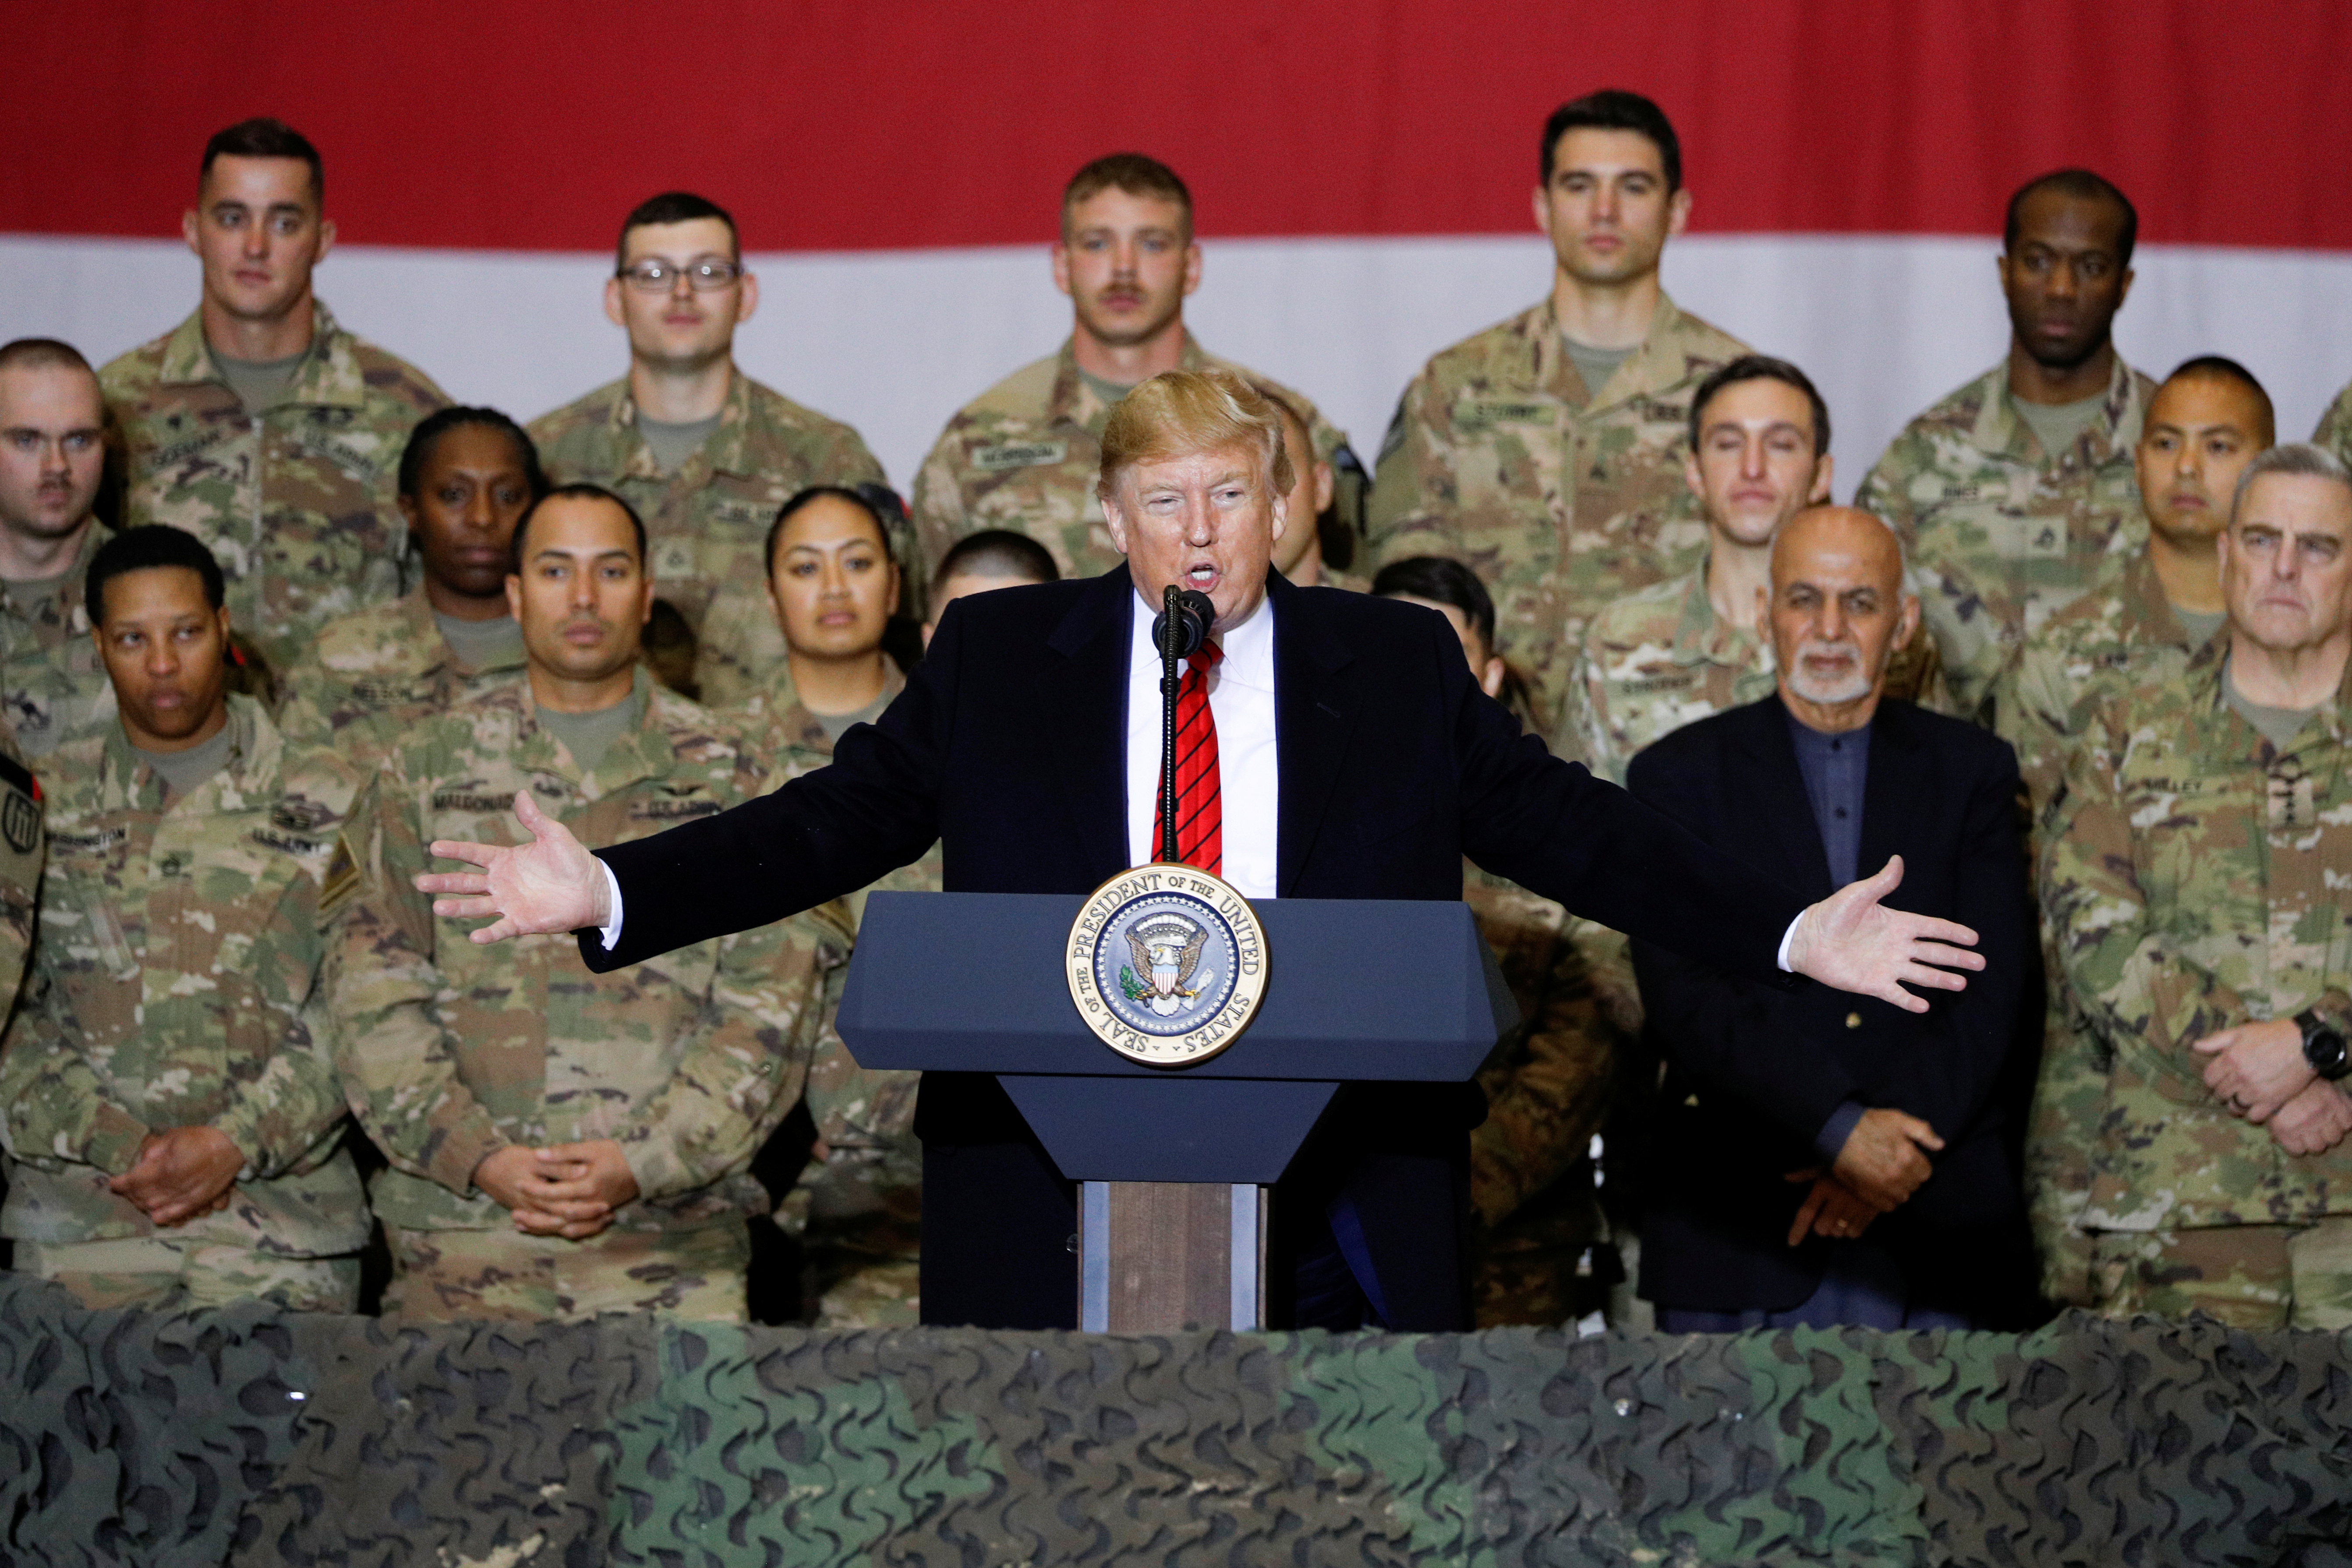 More U.S. troops leave Iraq over potential injuries as Trump downplays brain risk